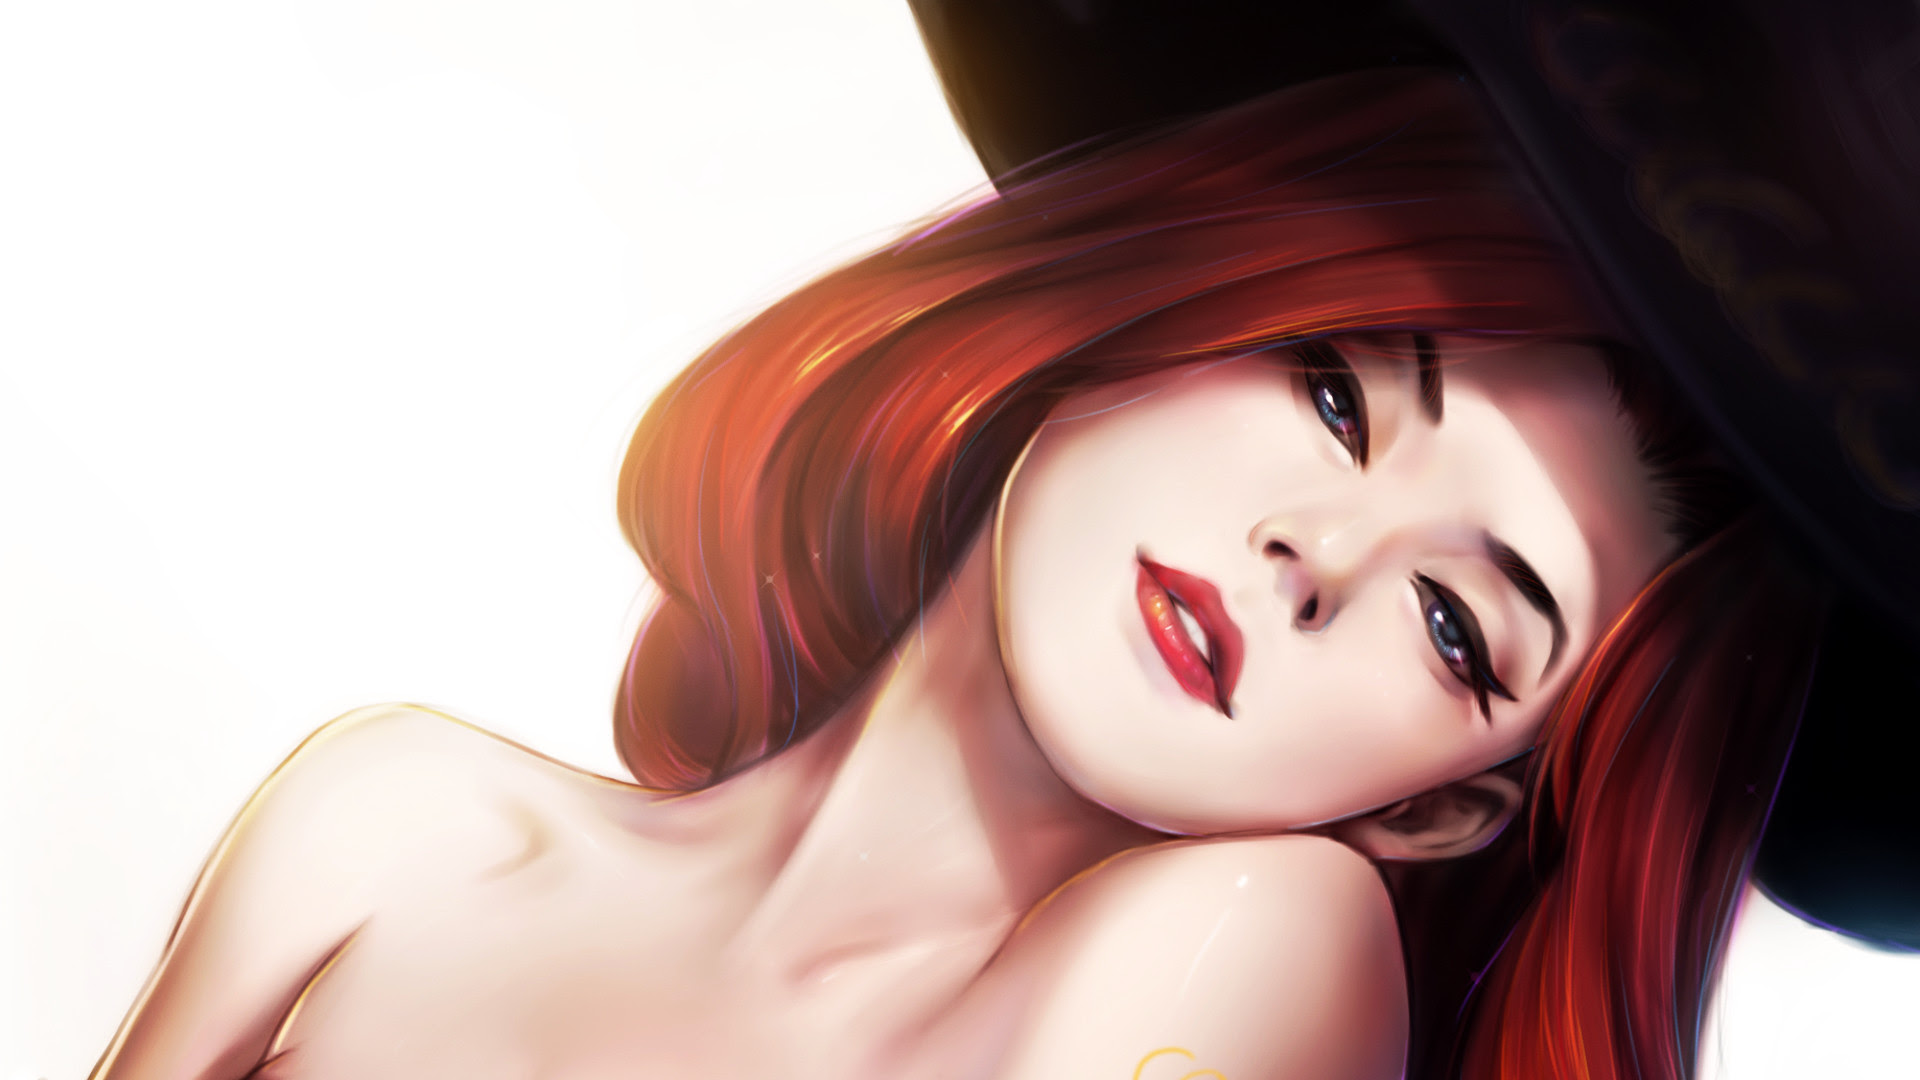 Miss Fortune Wallpaper 1920x1080 69 Images